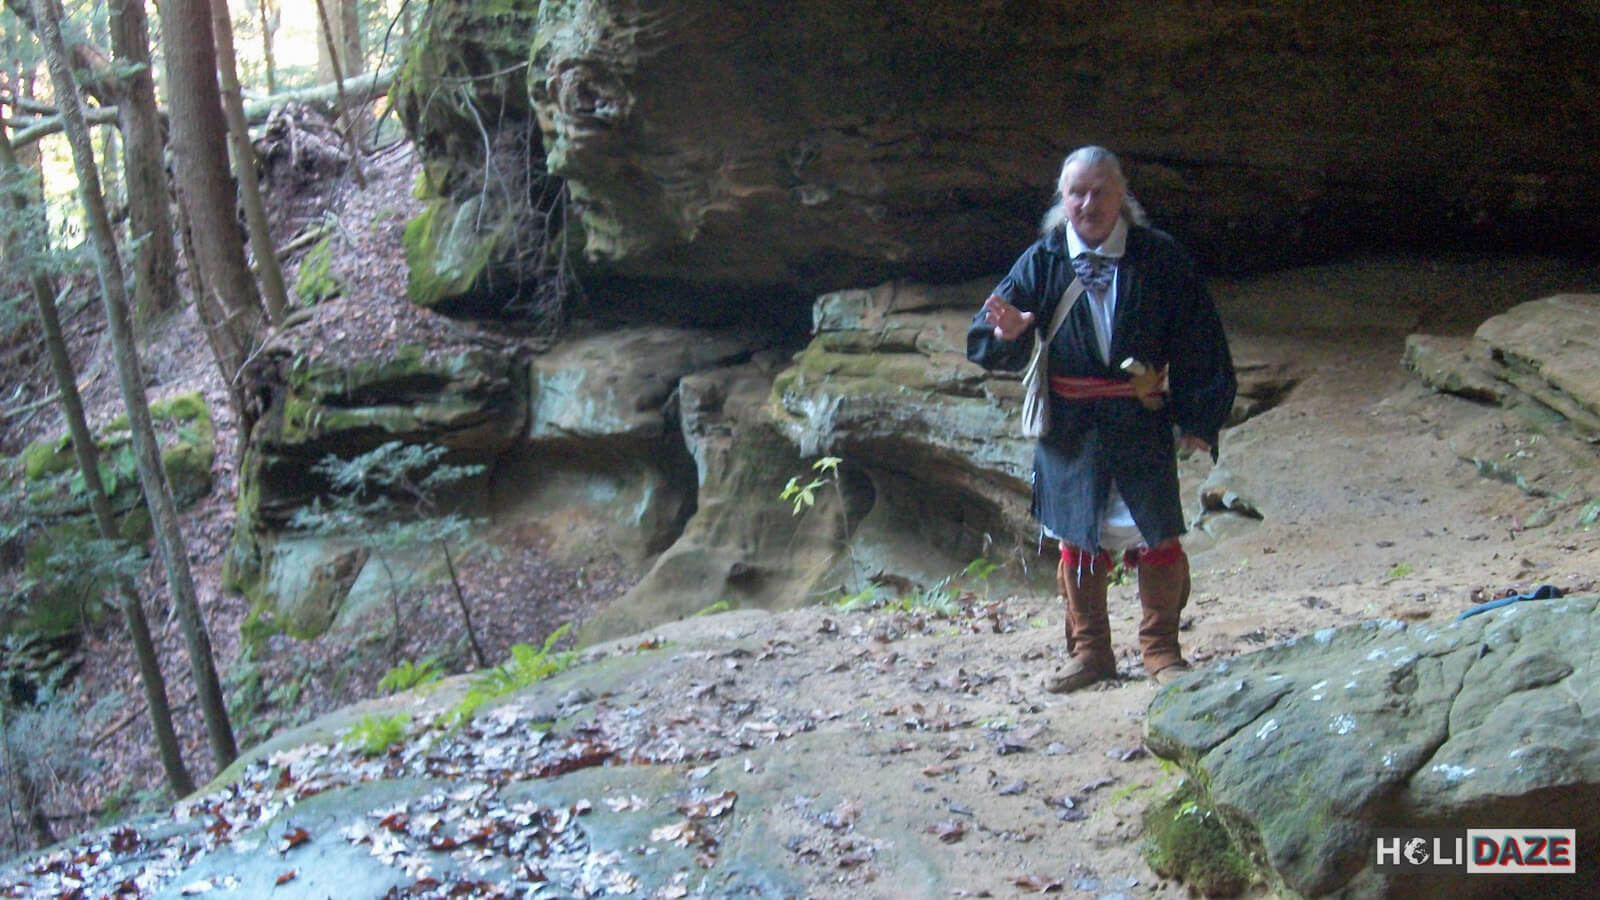 Shawnee storytelling session in Hocking Hills, Ohio